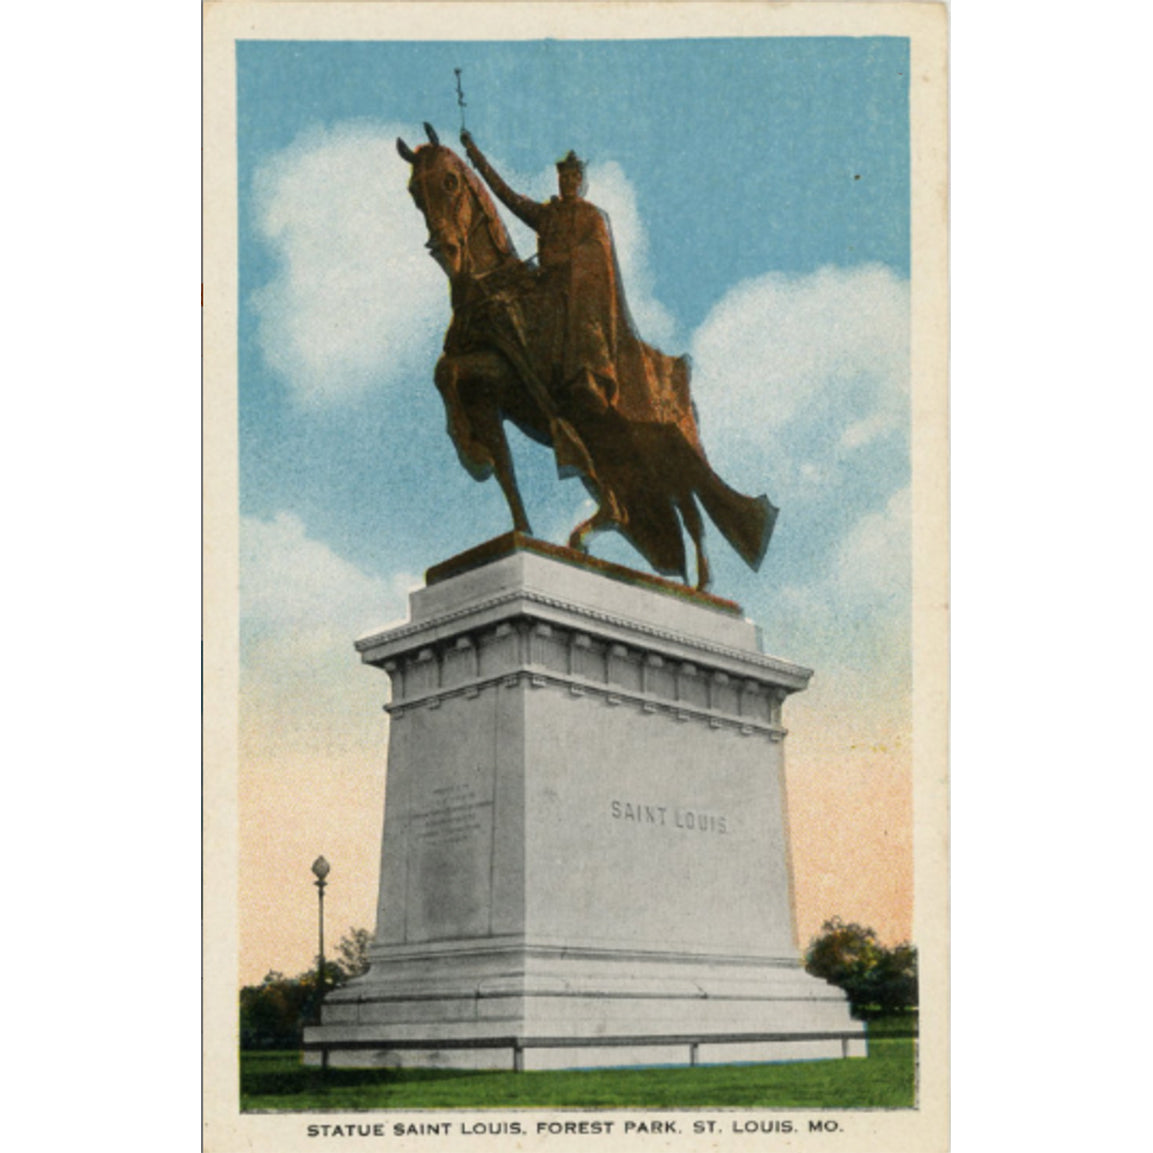 St. Louis Missouri Forest Park Statue French King Louis IX Vintage Postcard 1917 - Vintage Postcard Boutique